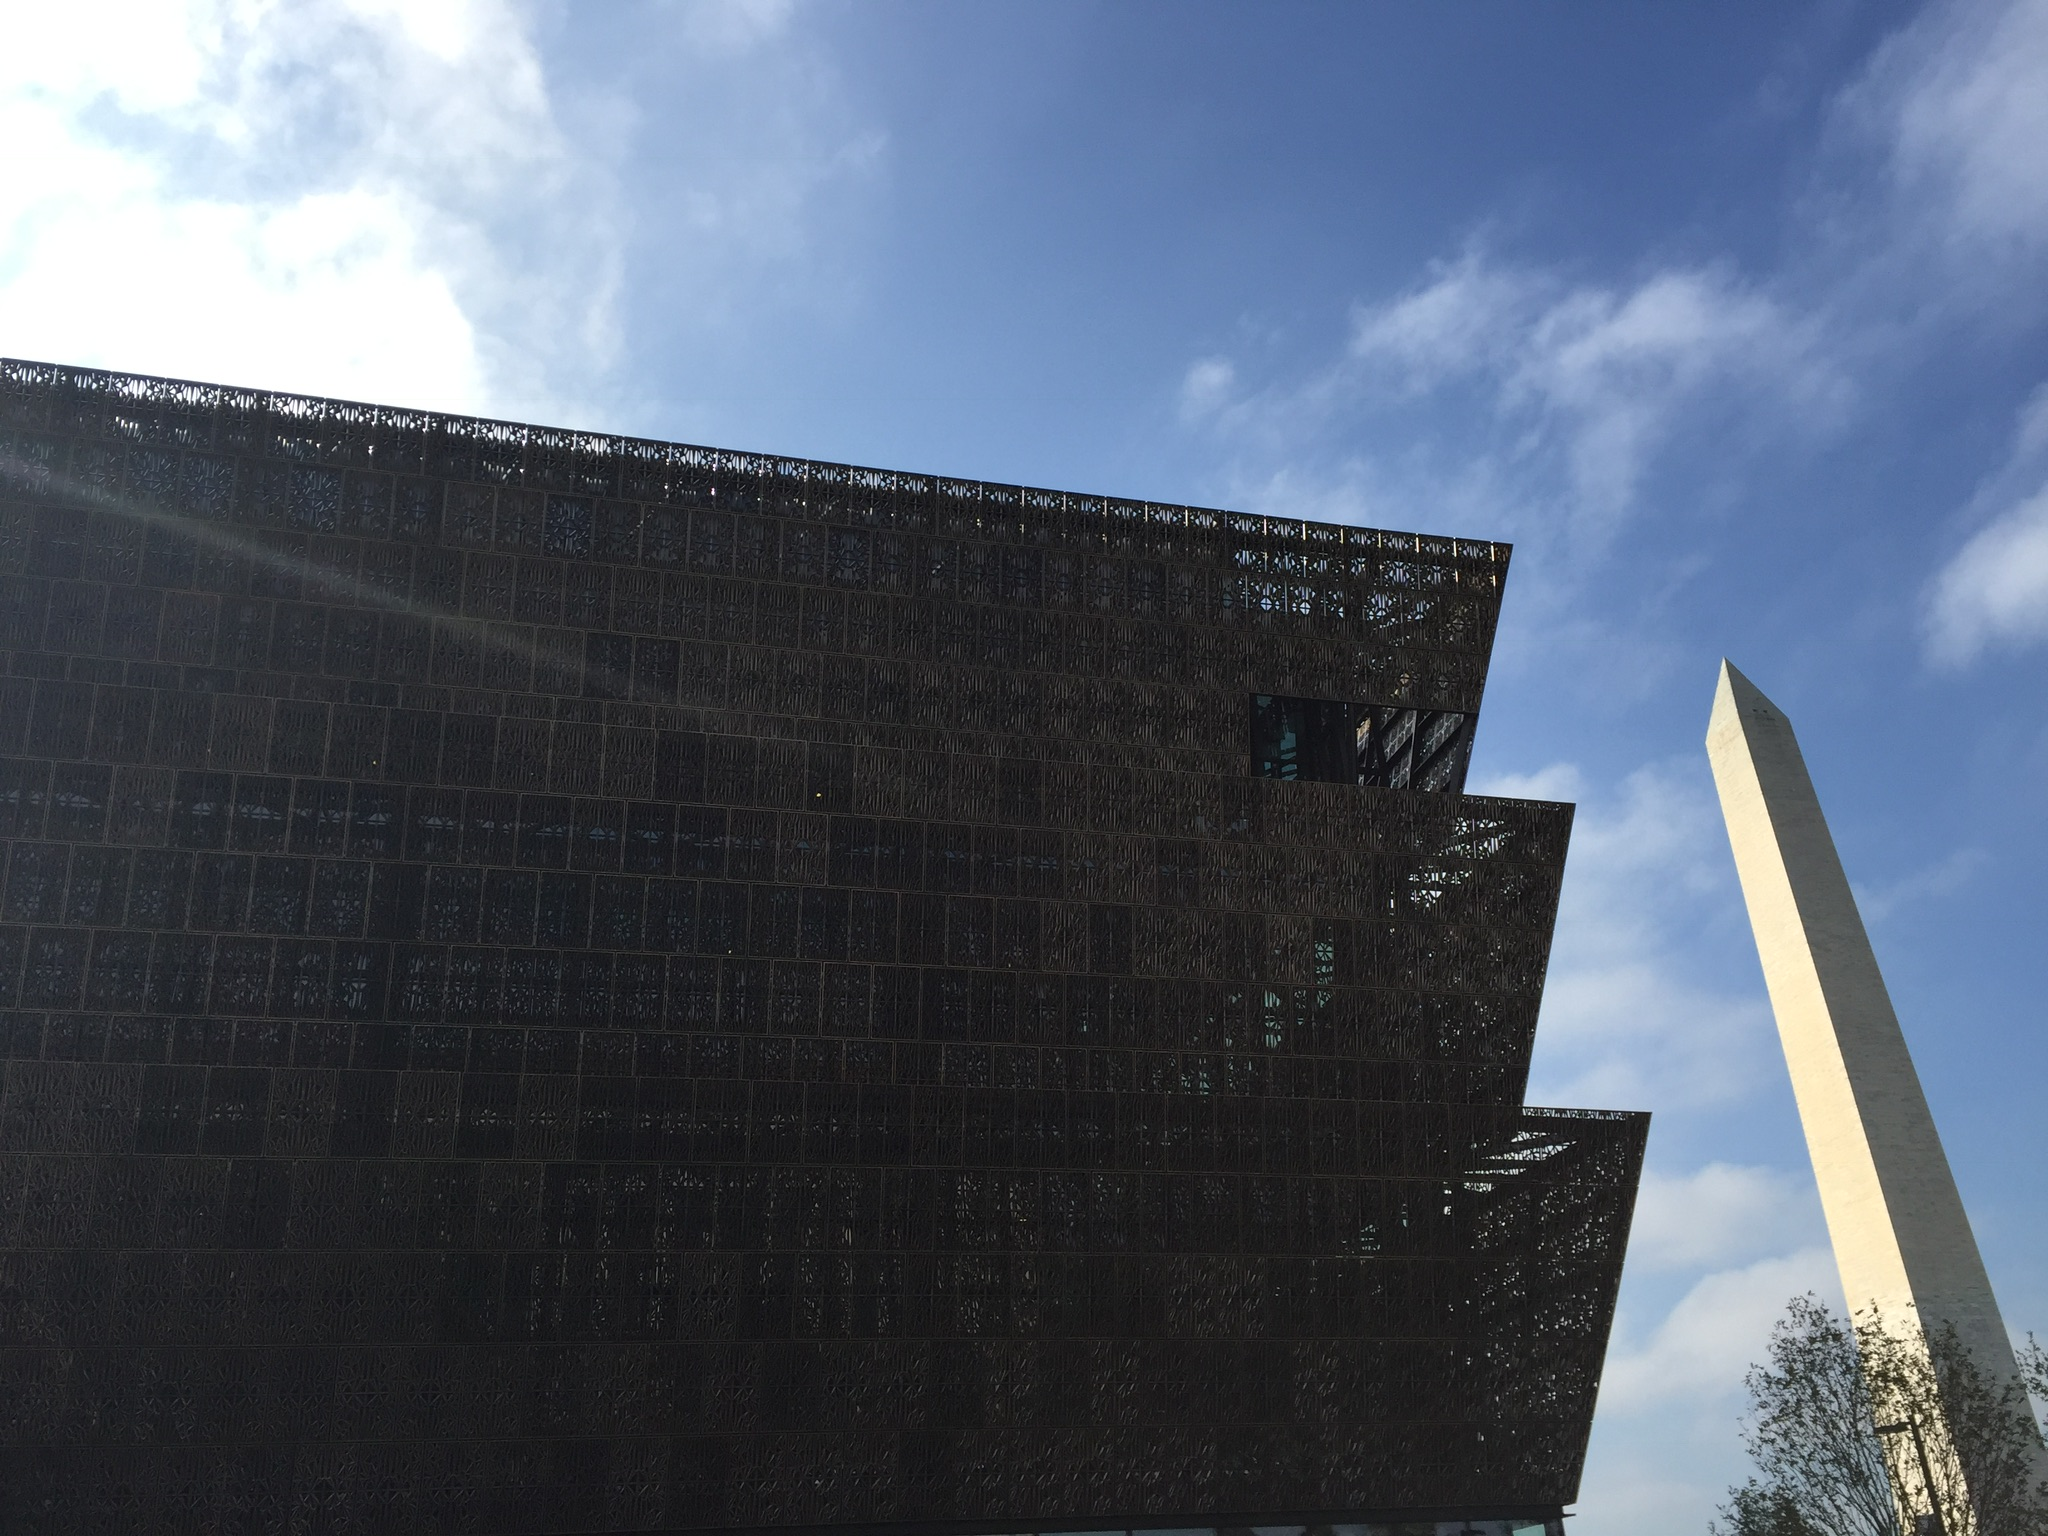 National Museum of African American History & Culture and the Washington Monument